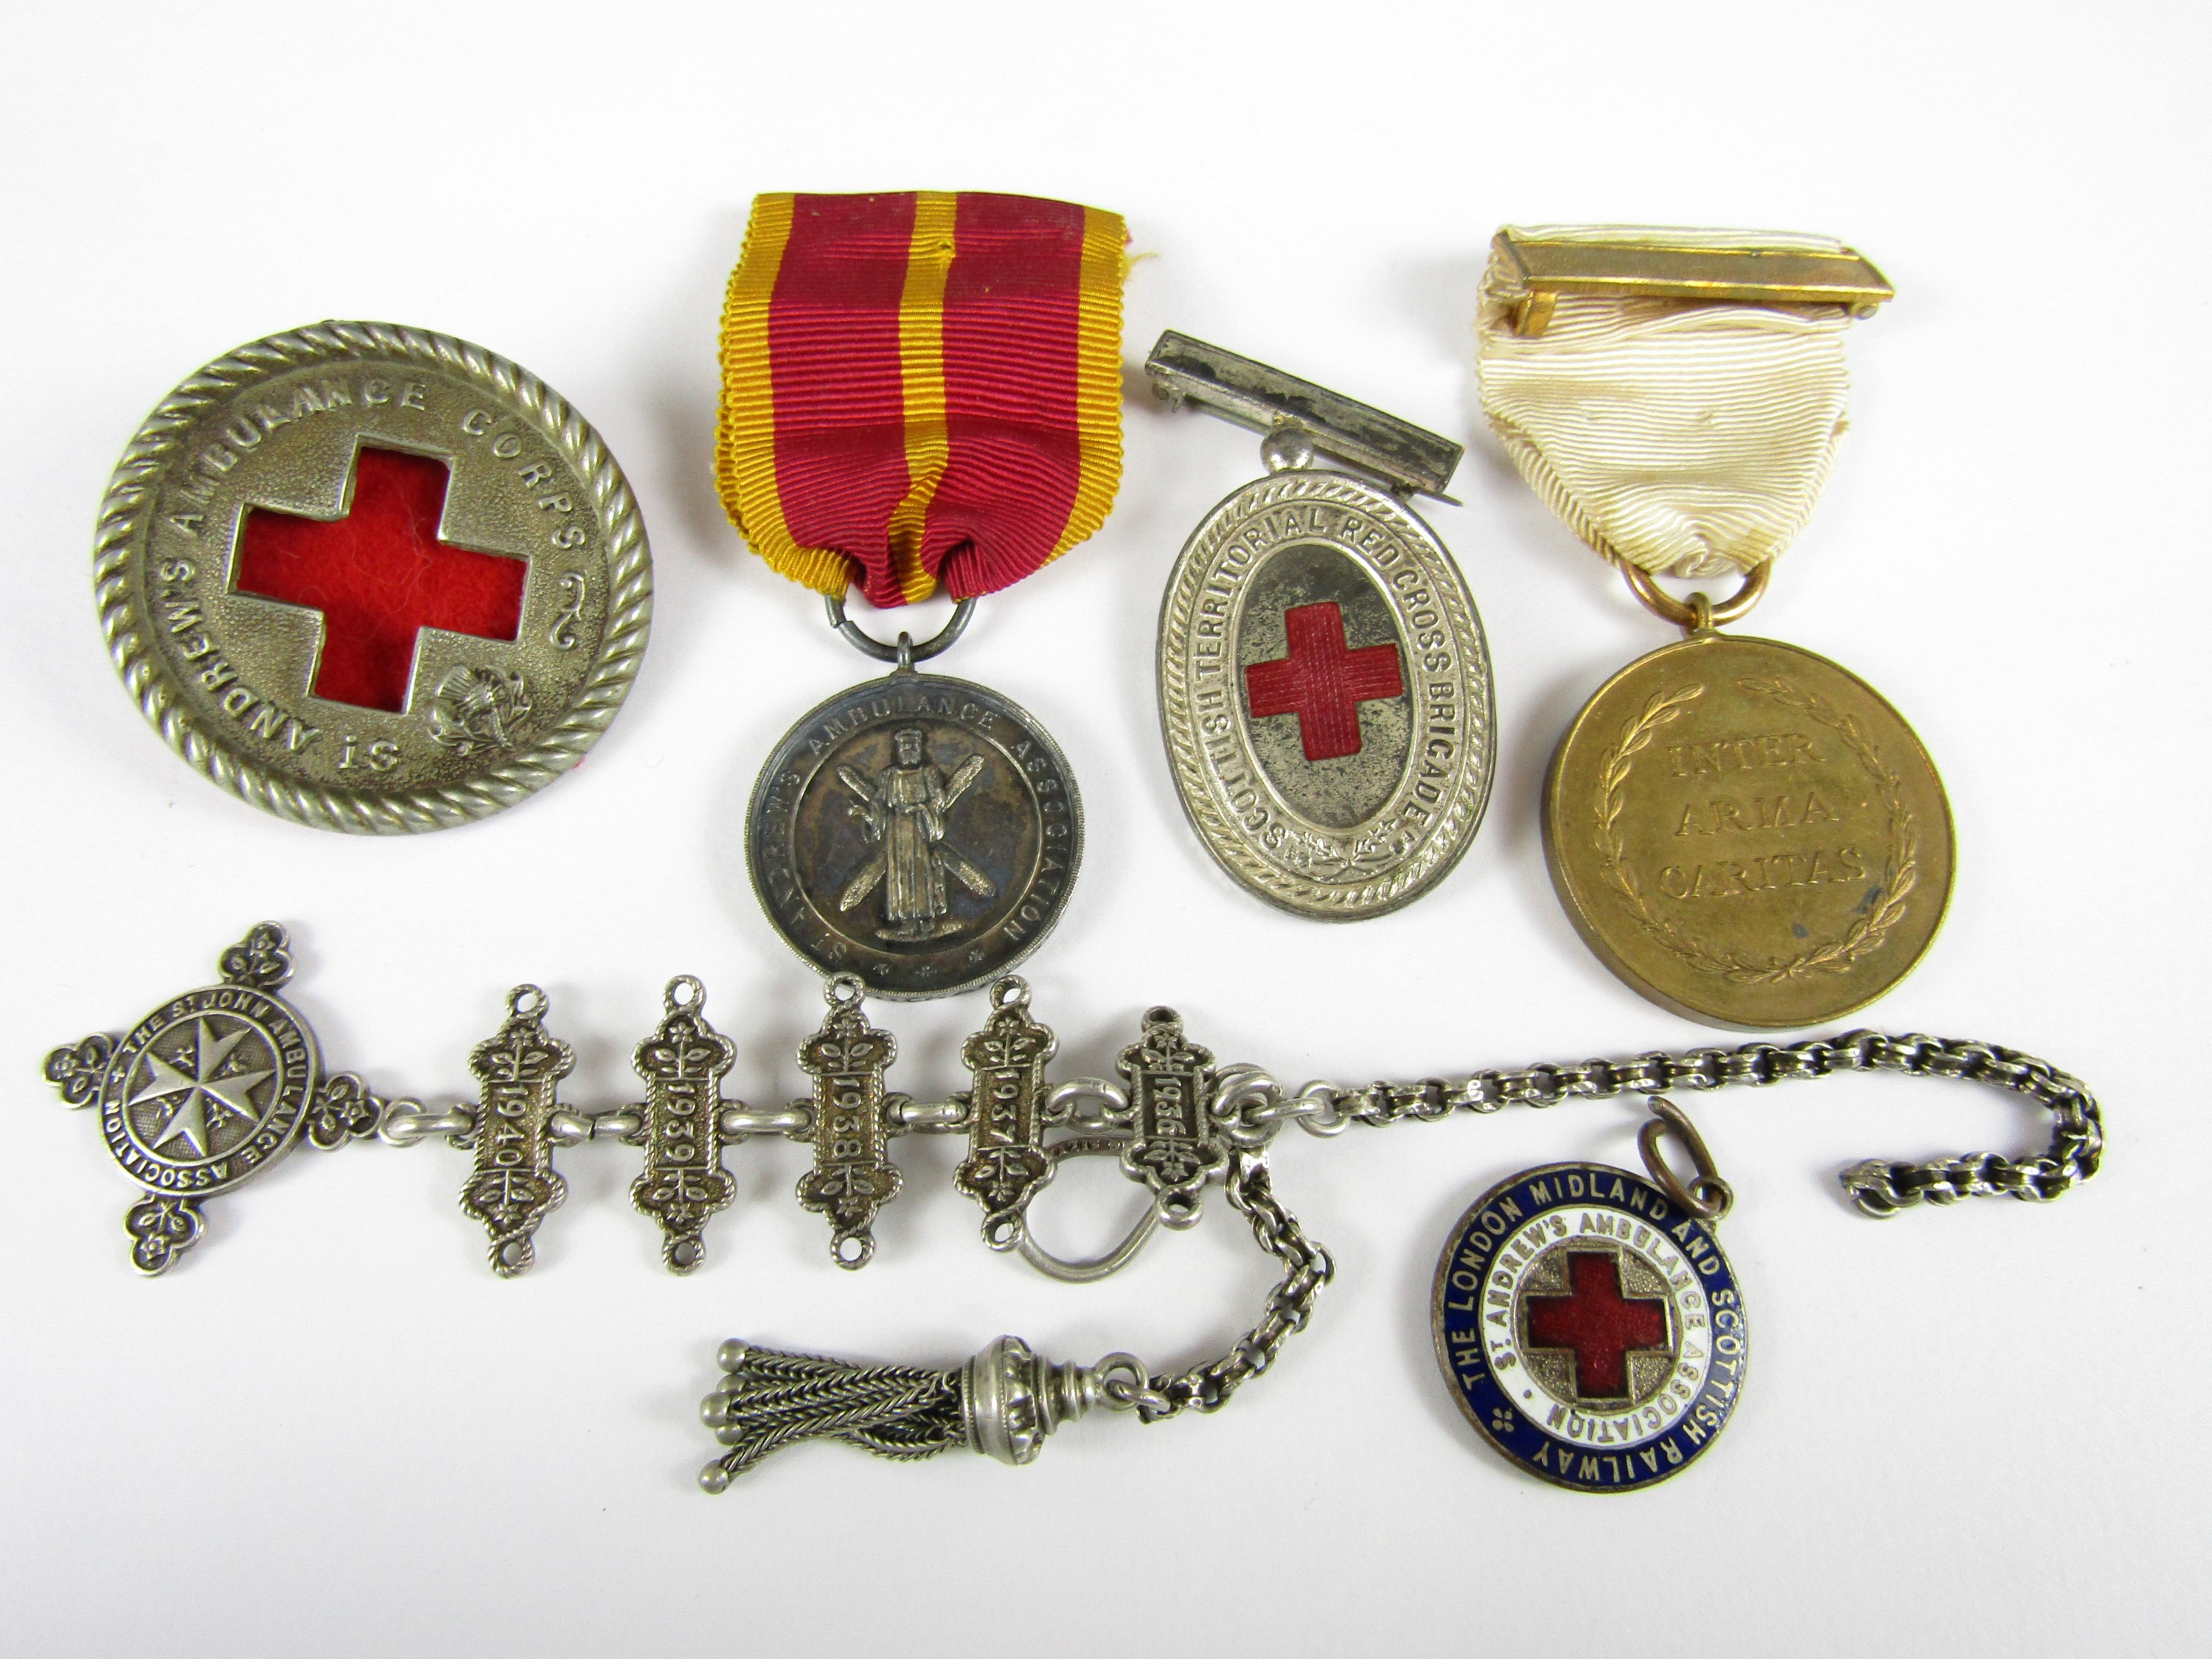 Lot 60 - A group of Red Cross and similar medals and insignia including a silver watch chain and a London